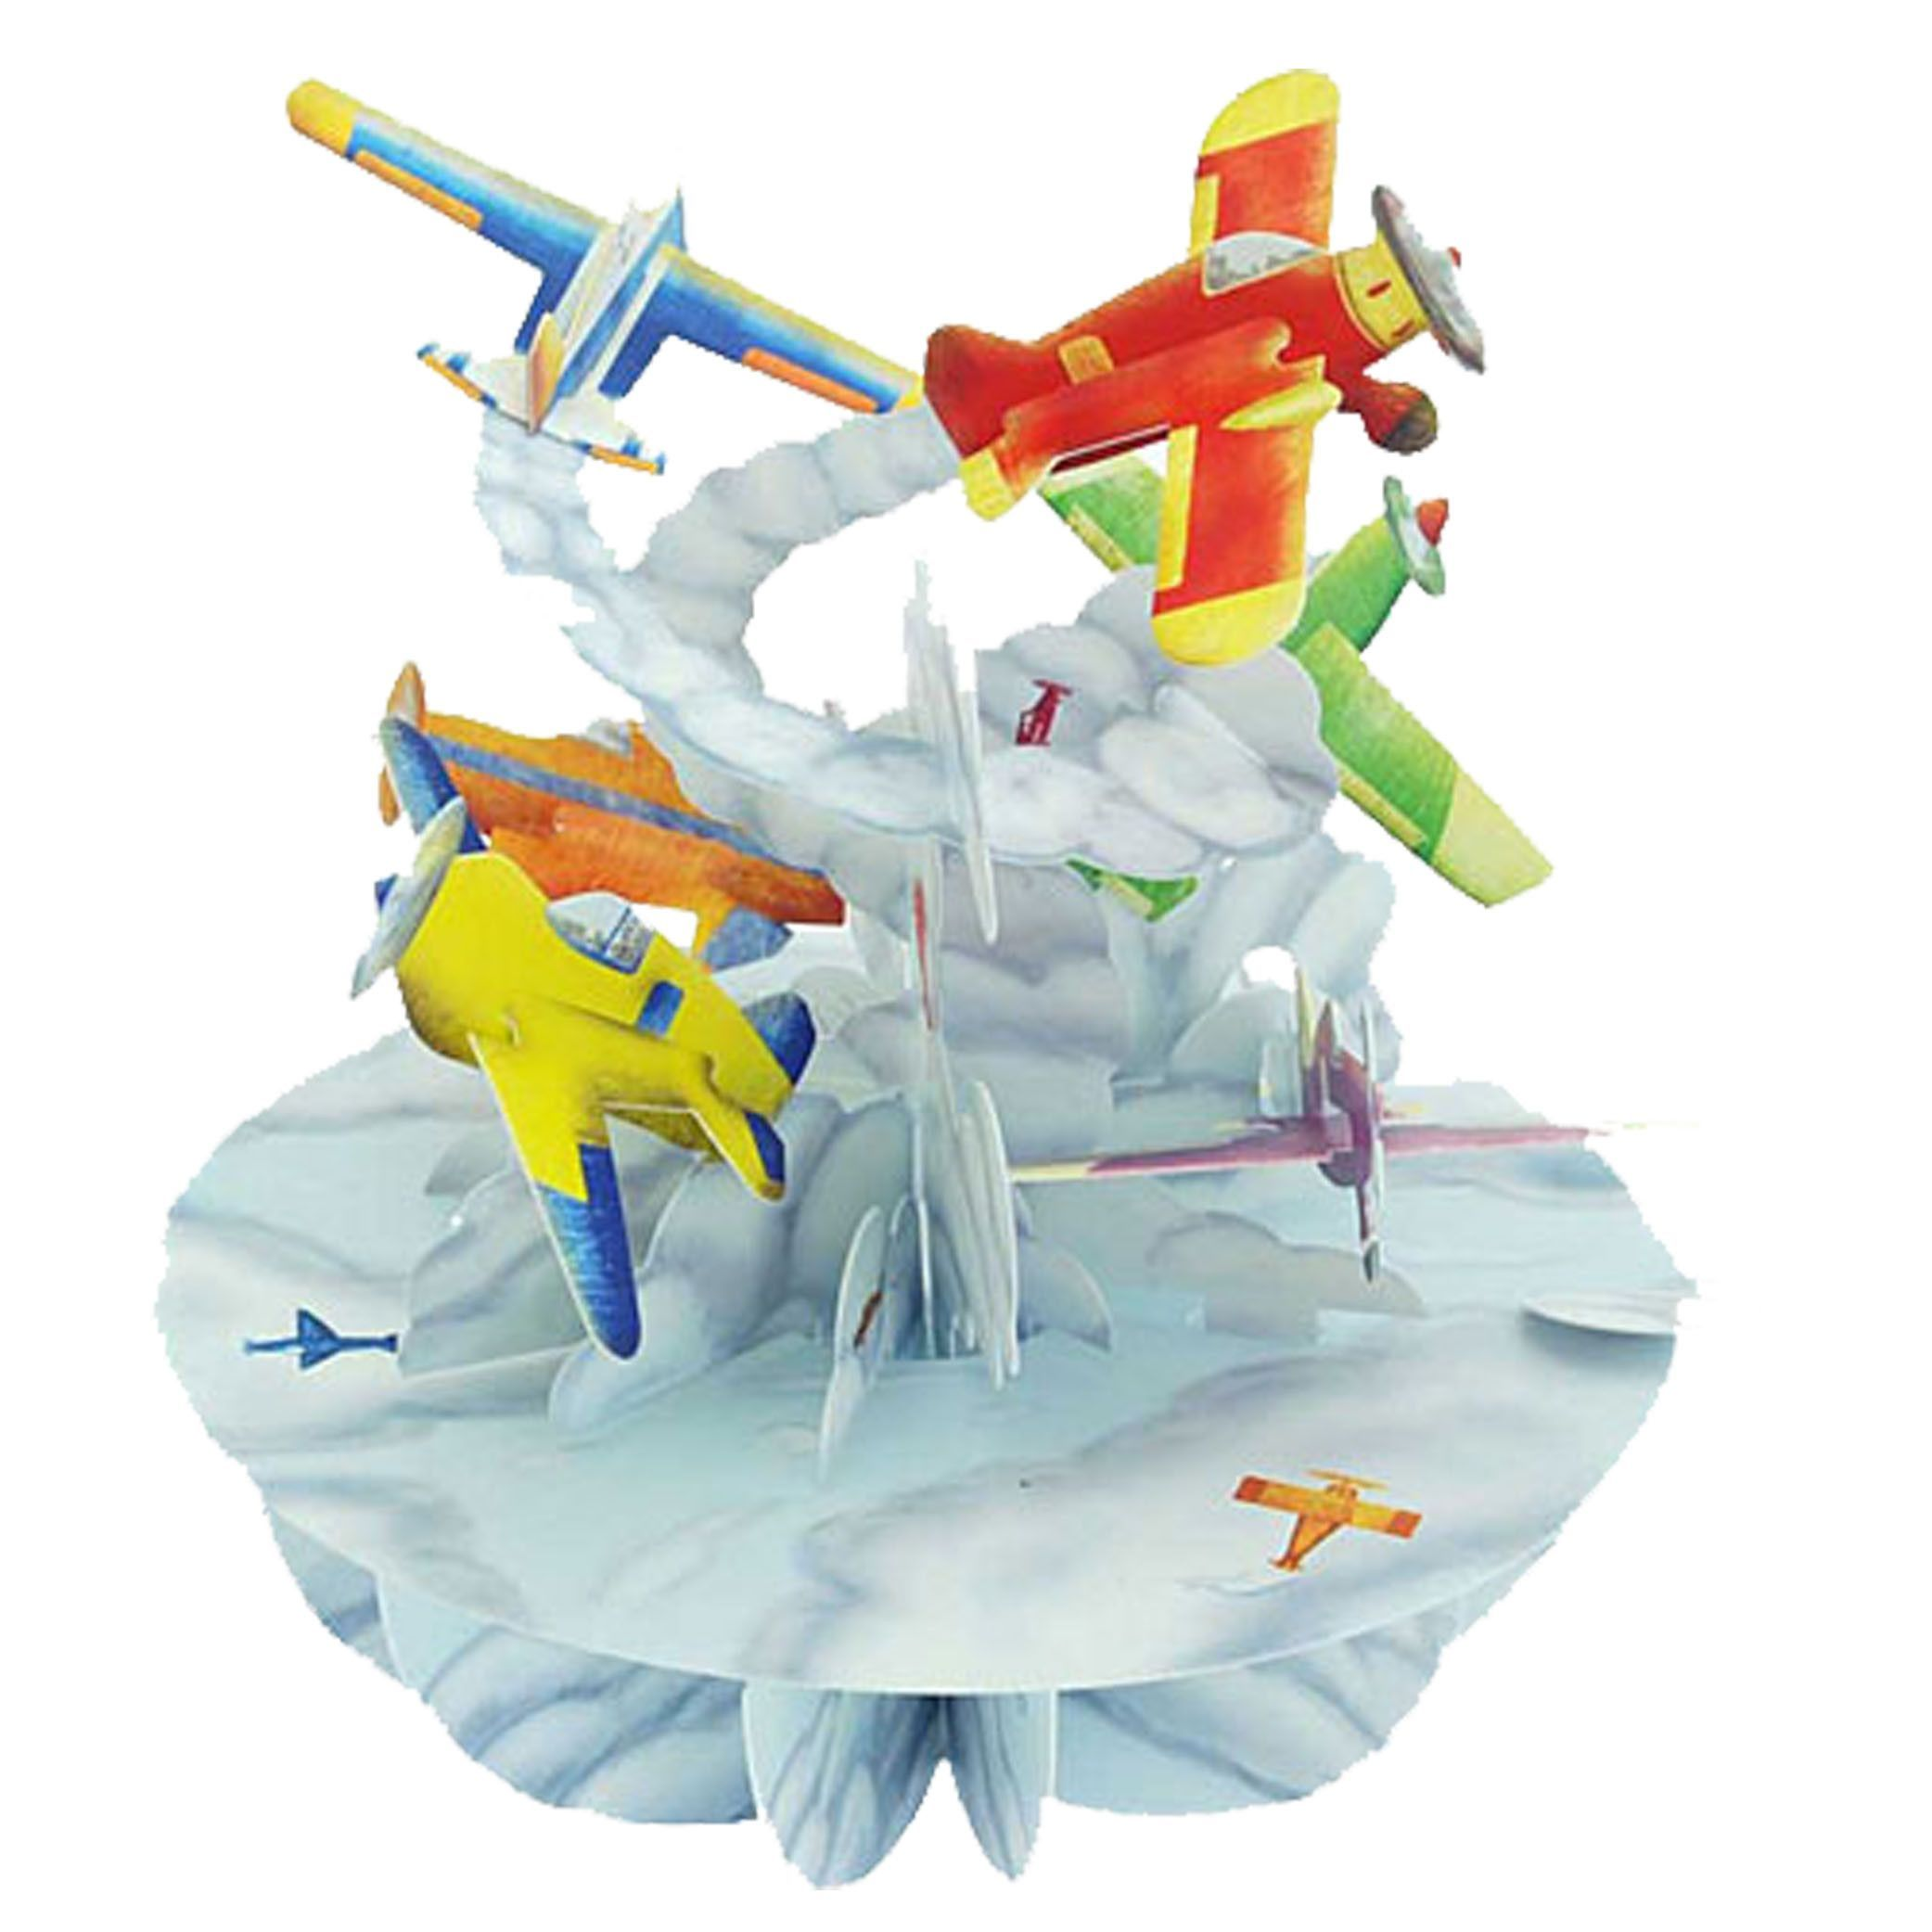 New Items Just Arrived! Santoro Pirouette... Check it out here! http://www.inpcreative.com/products/3d-pop-up-greeting-card-planes?utm_campaign=social_autopilot&utm_source=pin&utm_medium=pin http://www.inpcreative.com/products/3d-pop-up-greeting-card-planes?utm_campaign=social_autopilot&utm_source=pin&utm_medium=pin